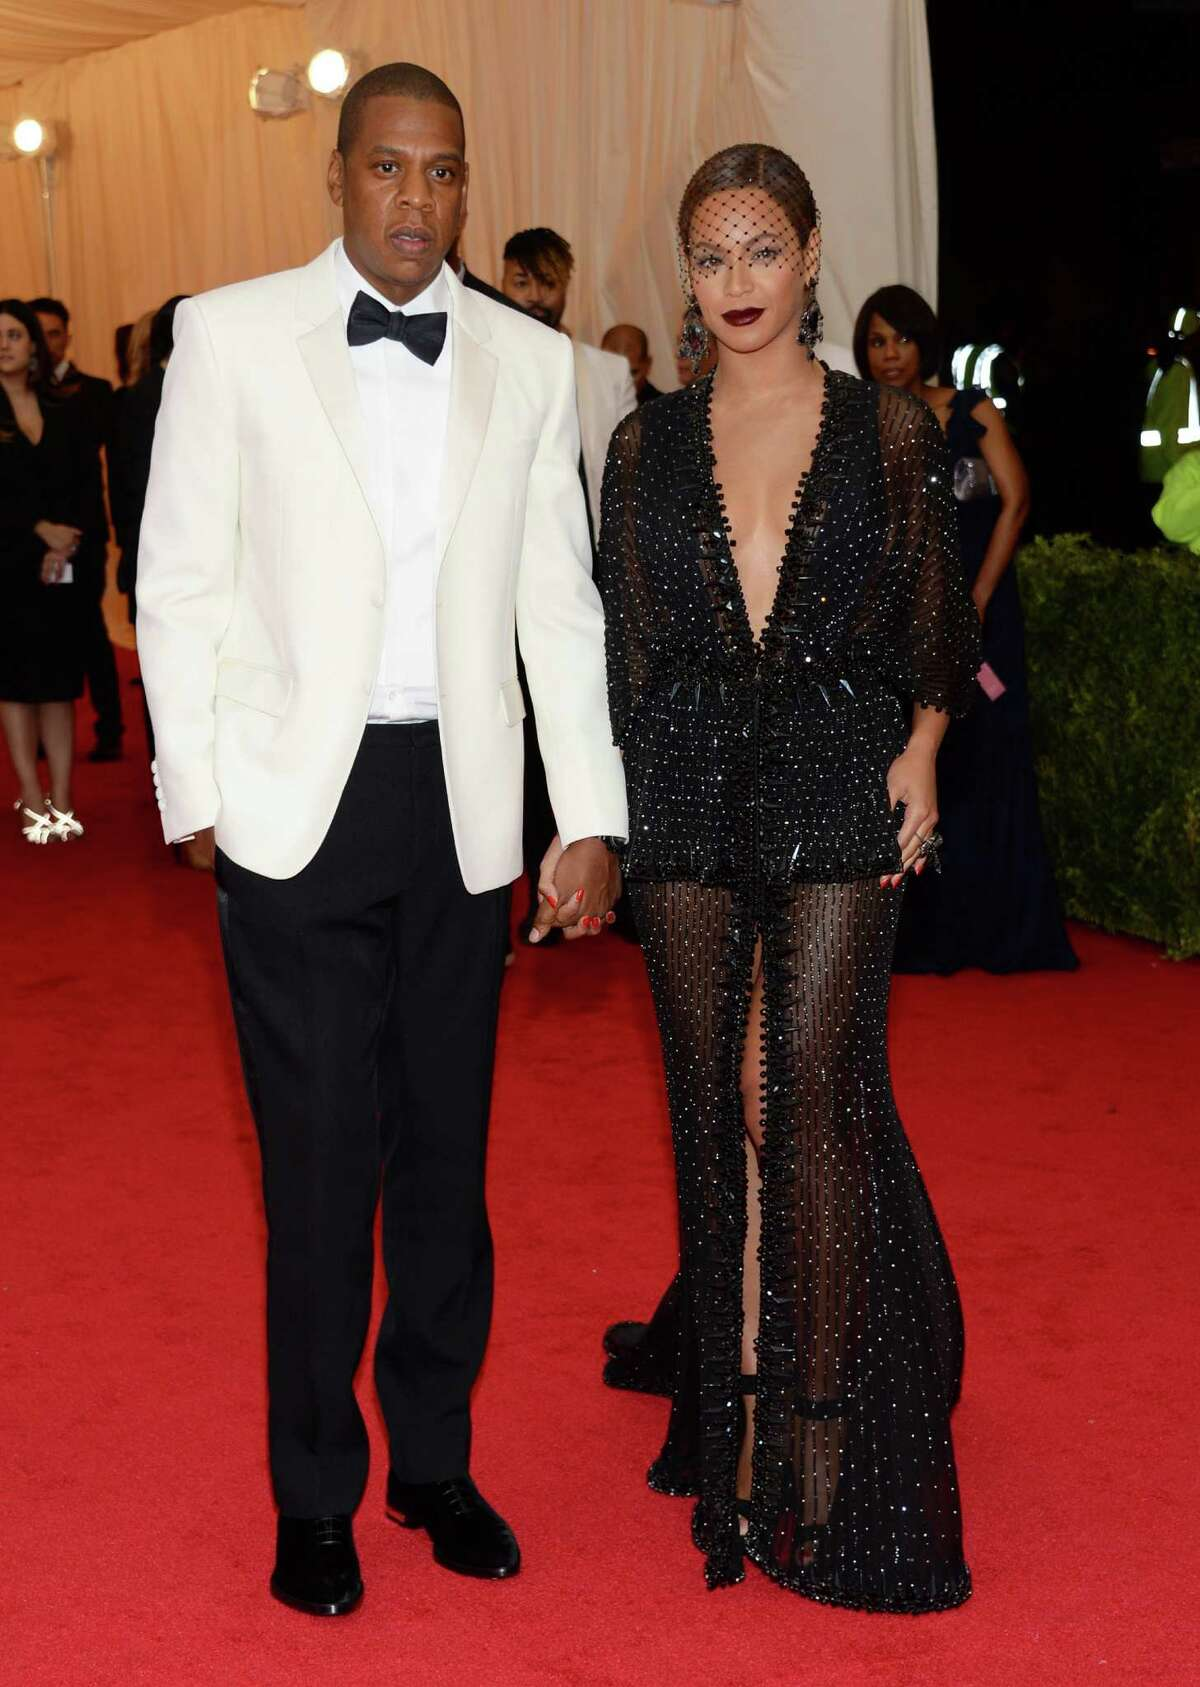 """FILE - This May 5, 2014 file photo shows Jay Z, left, and Beyonce at The Metropolitan Museum of Art's Costume Institute benefit gala celebrating """"Charles James: Beyond Fashion"""" in New York. The Standard Hotel in New York City says it is investigating the leak of a security video that appears to show Beyonce's sister, Solange, attacking Jay Z. Asked about the video on Monday, May 12, by The Associated Press, the hotel issued a statement saying it is """"shocked and disappointed that there was a clear breach of our security system."""" (Photo by Evan Agostini/Invision/AP, File)"""